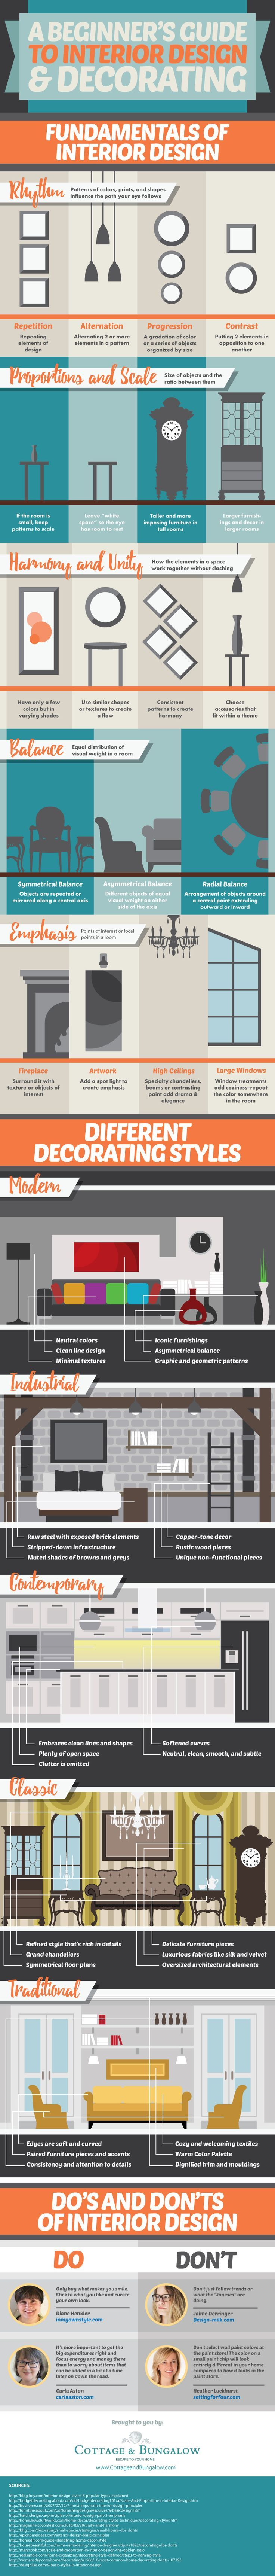 The 25 best Interior design ideas on Pinterest Copper decor